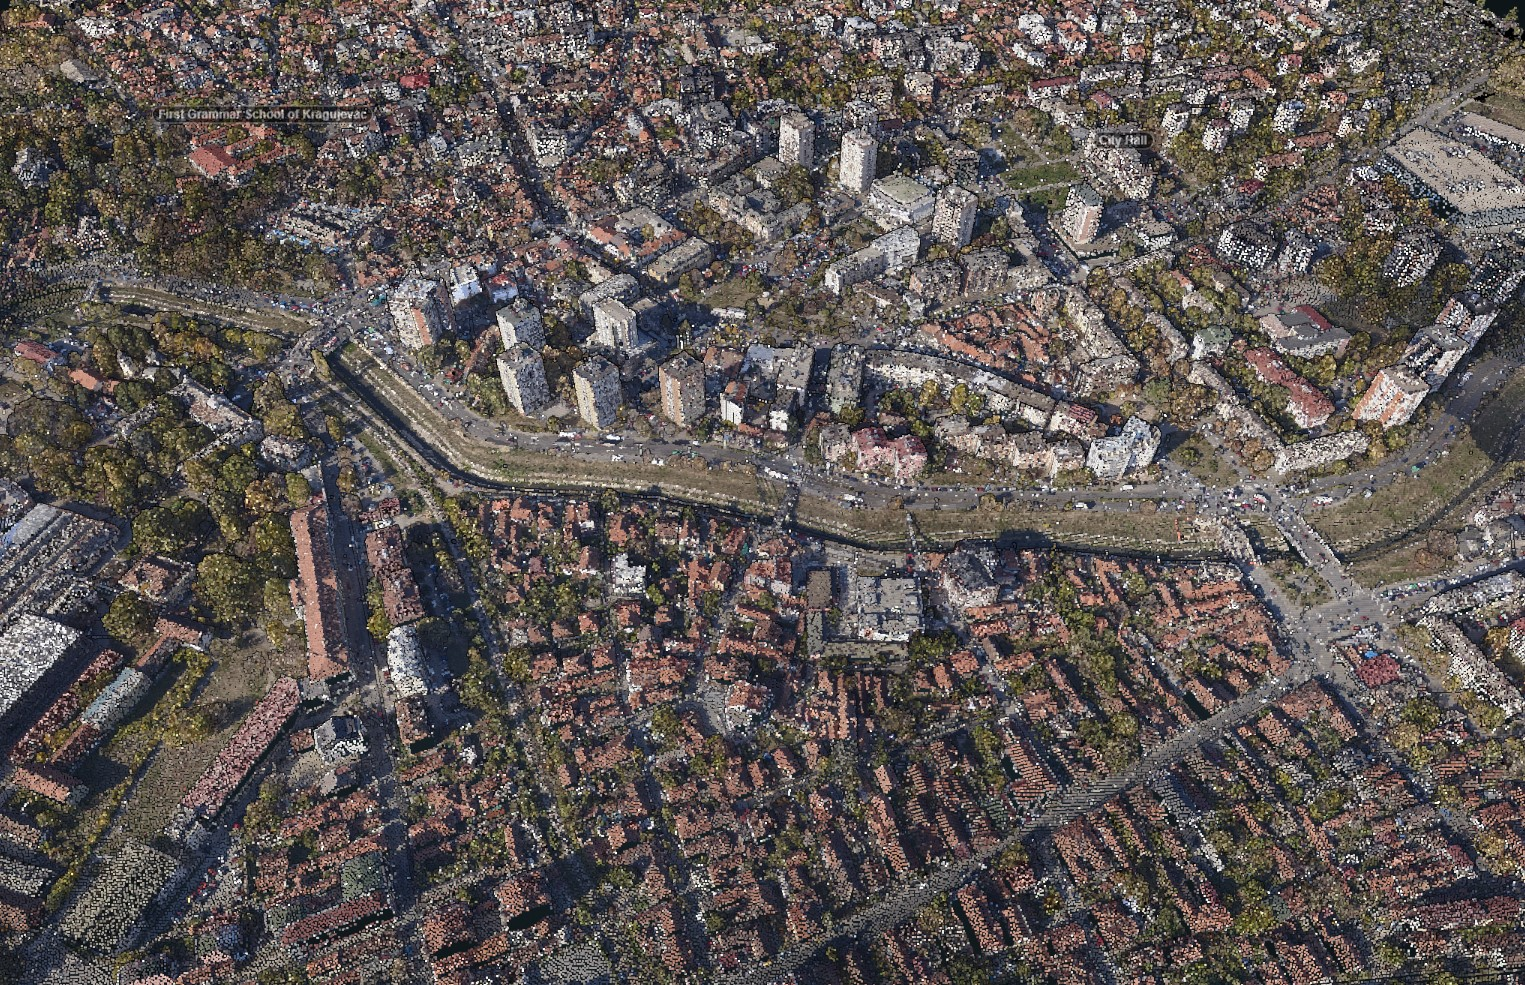 Kragujevac, point cloud sample